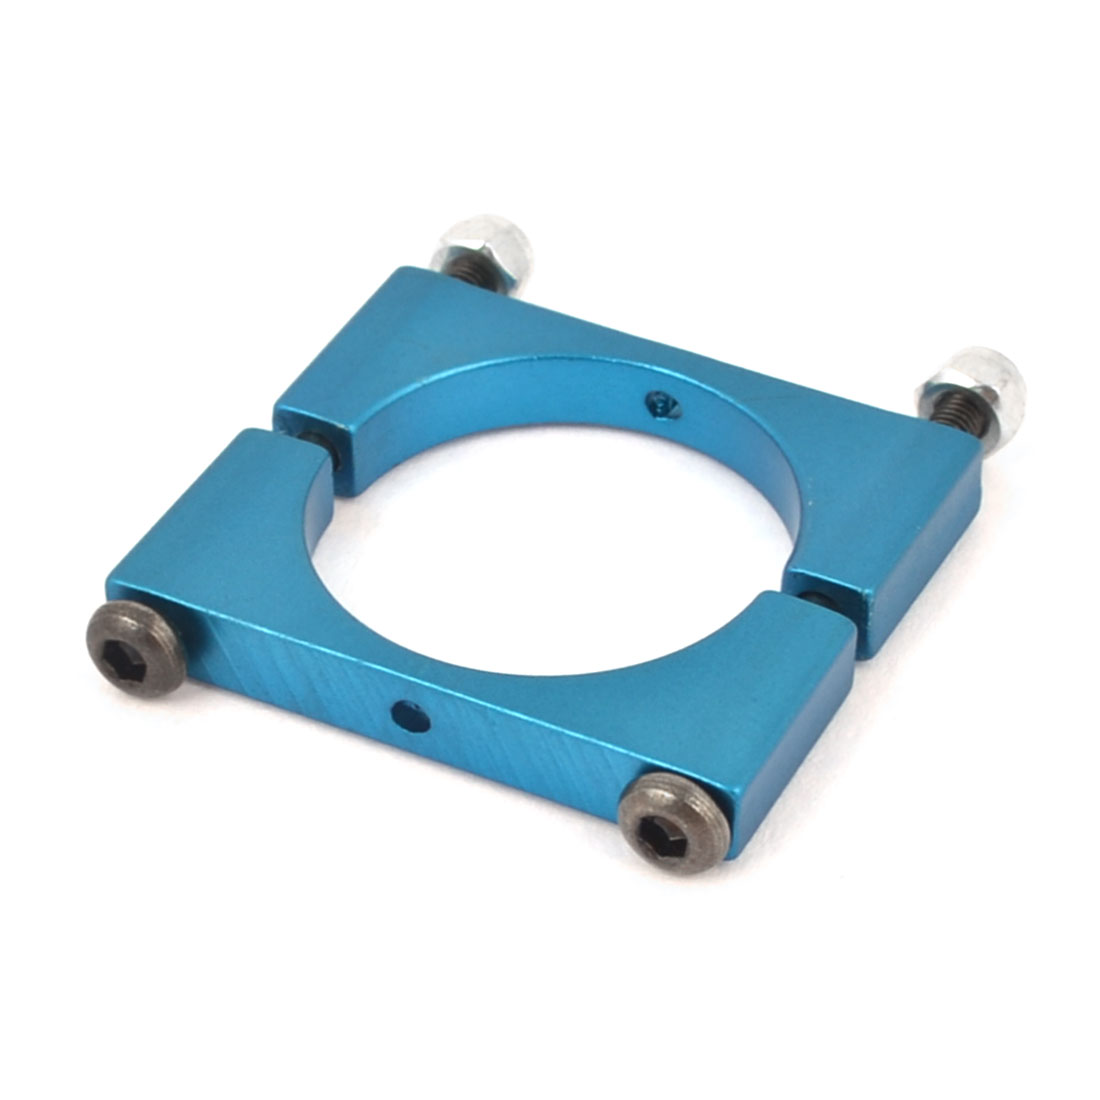 22mm Blue Aluminum Clamp for Carbon Fiber Tube Quadcopter Hexacopter Octocopter